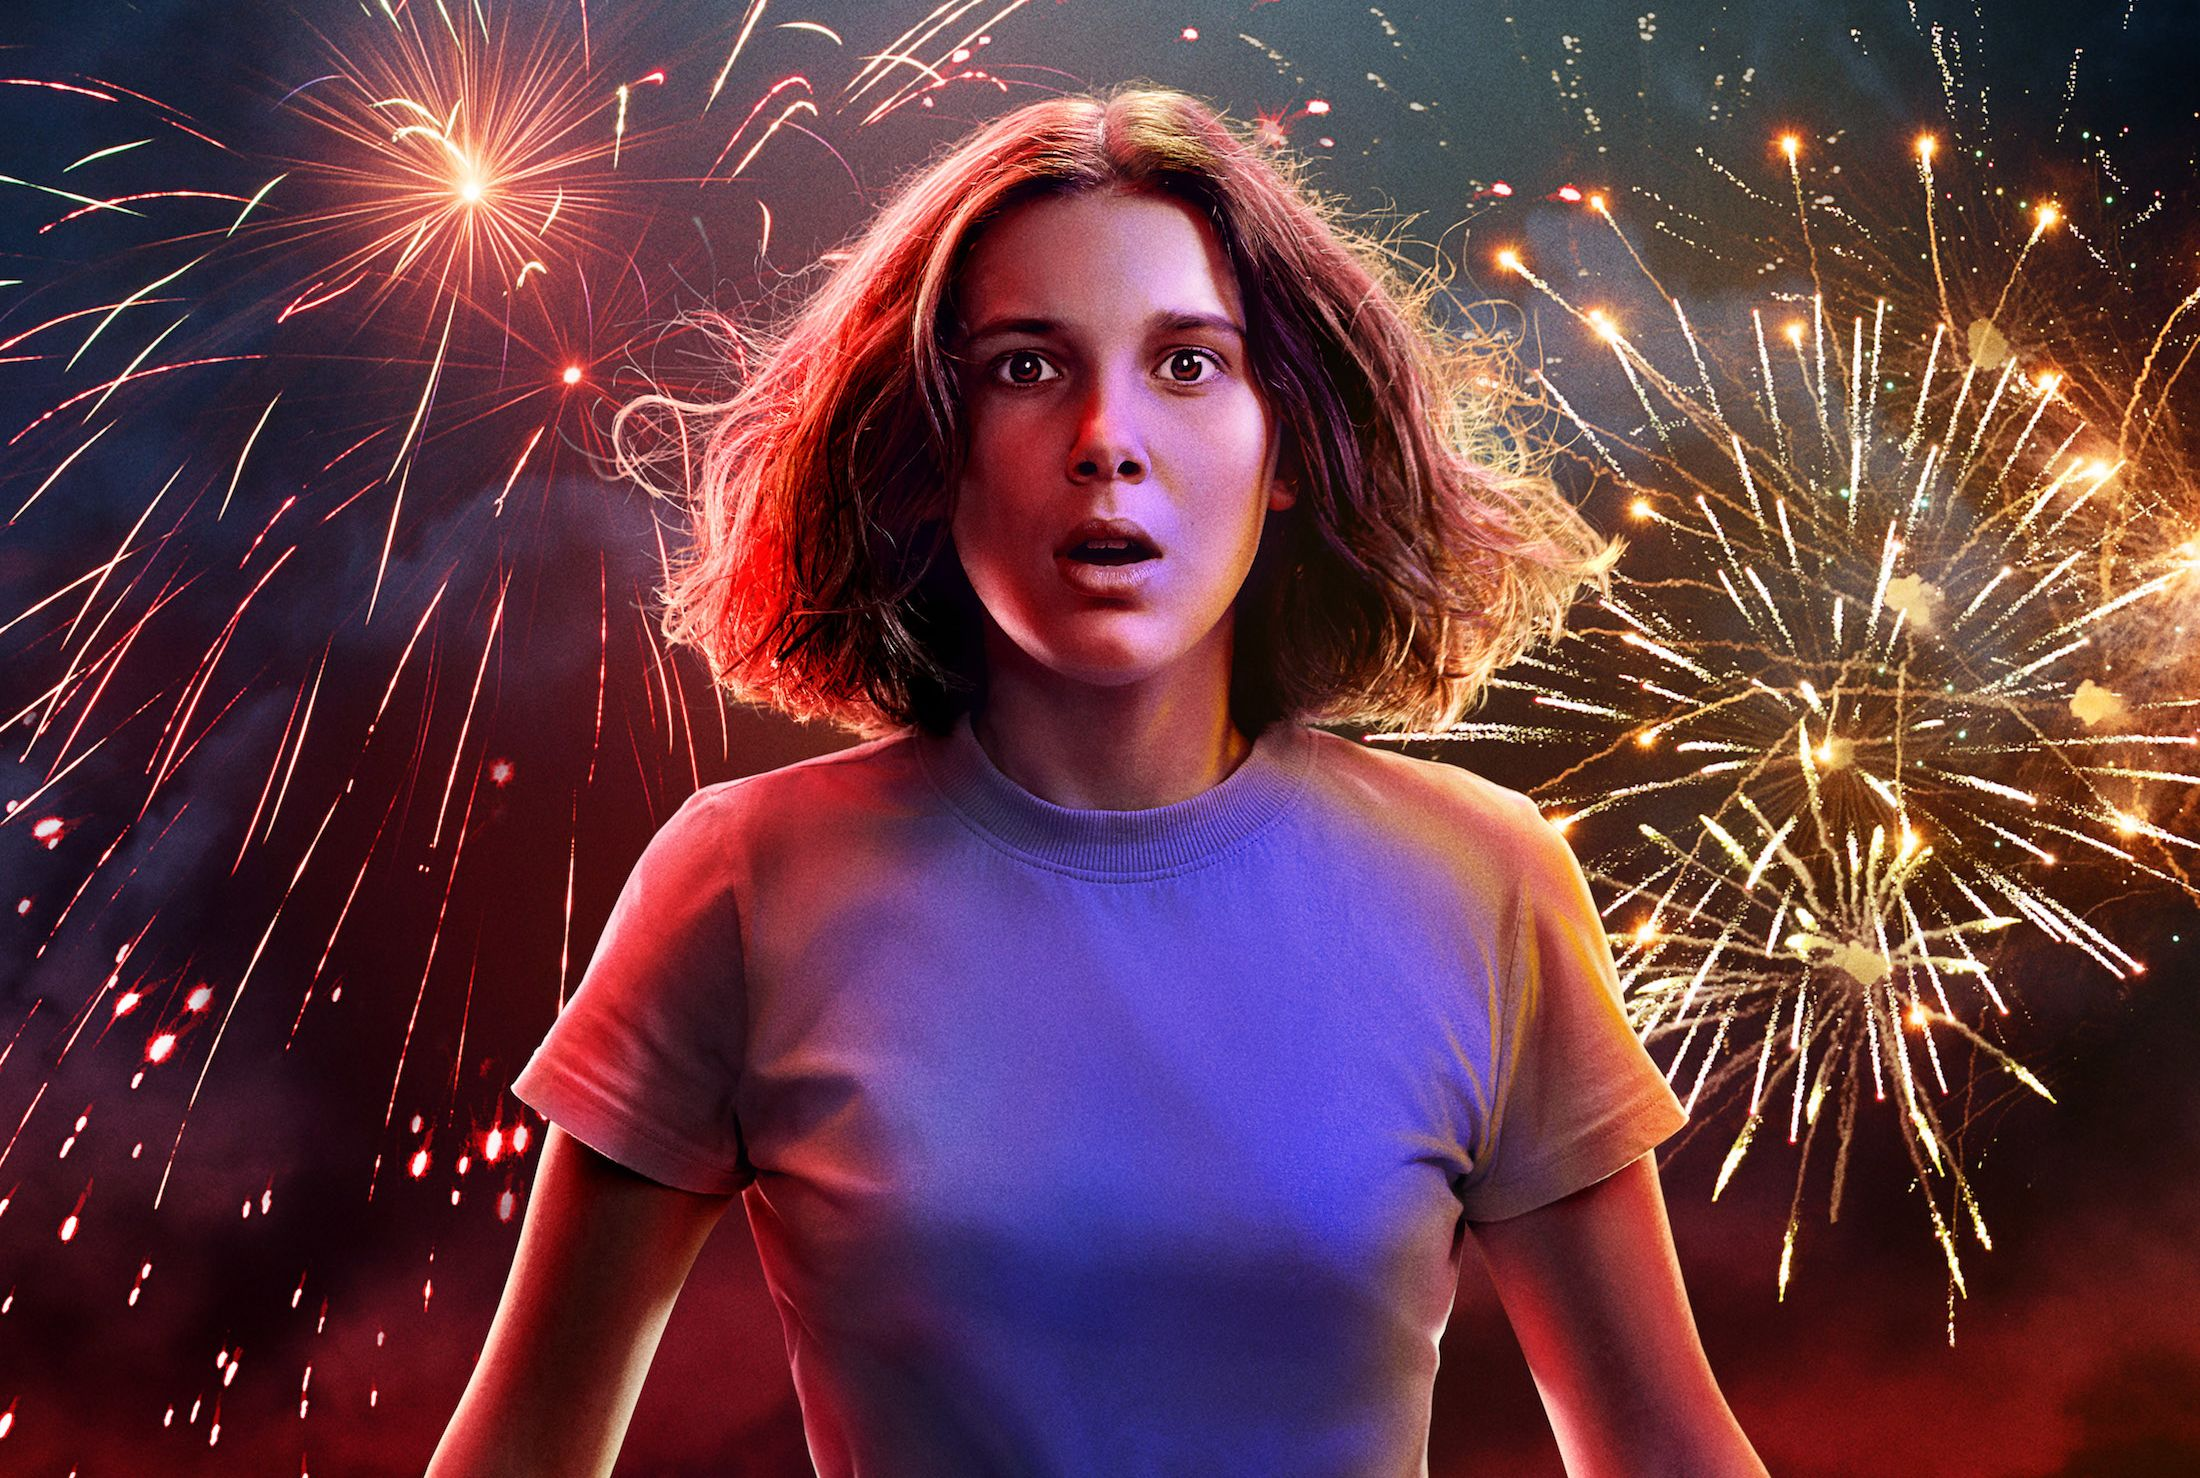 c7069516a Stranger Things Fan Theory Predicts Eleven Will Be Season 4's ...